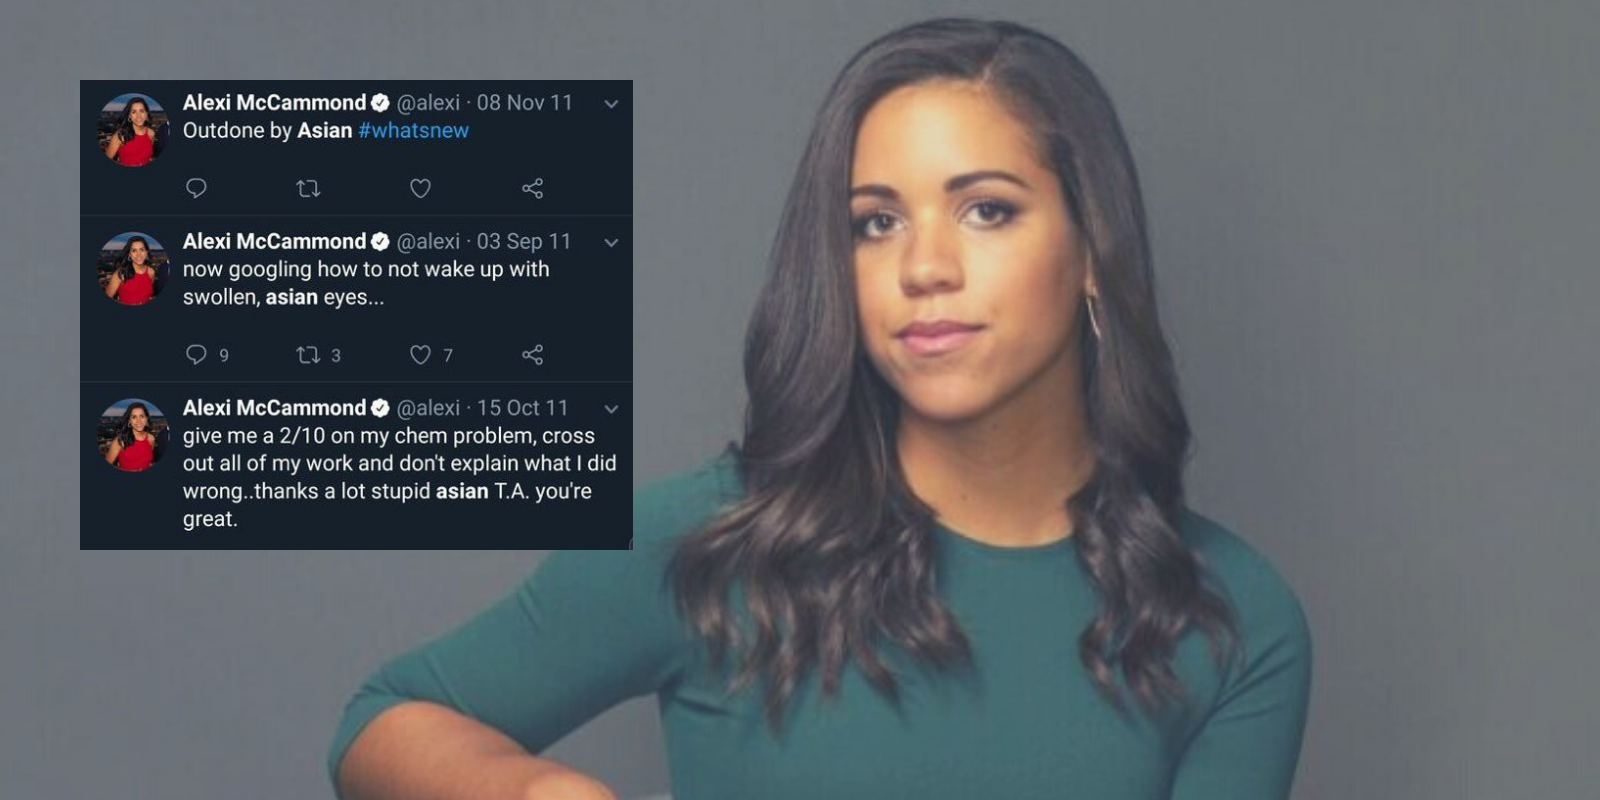 New editor-in-chief of Teen Vogue accused of anti-Asian racism after old tweets resurface